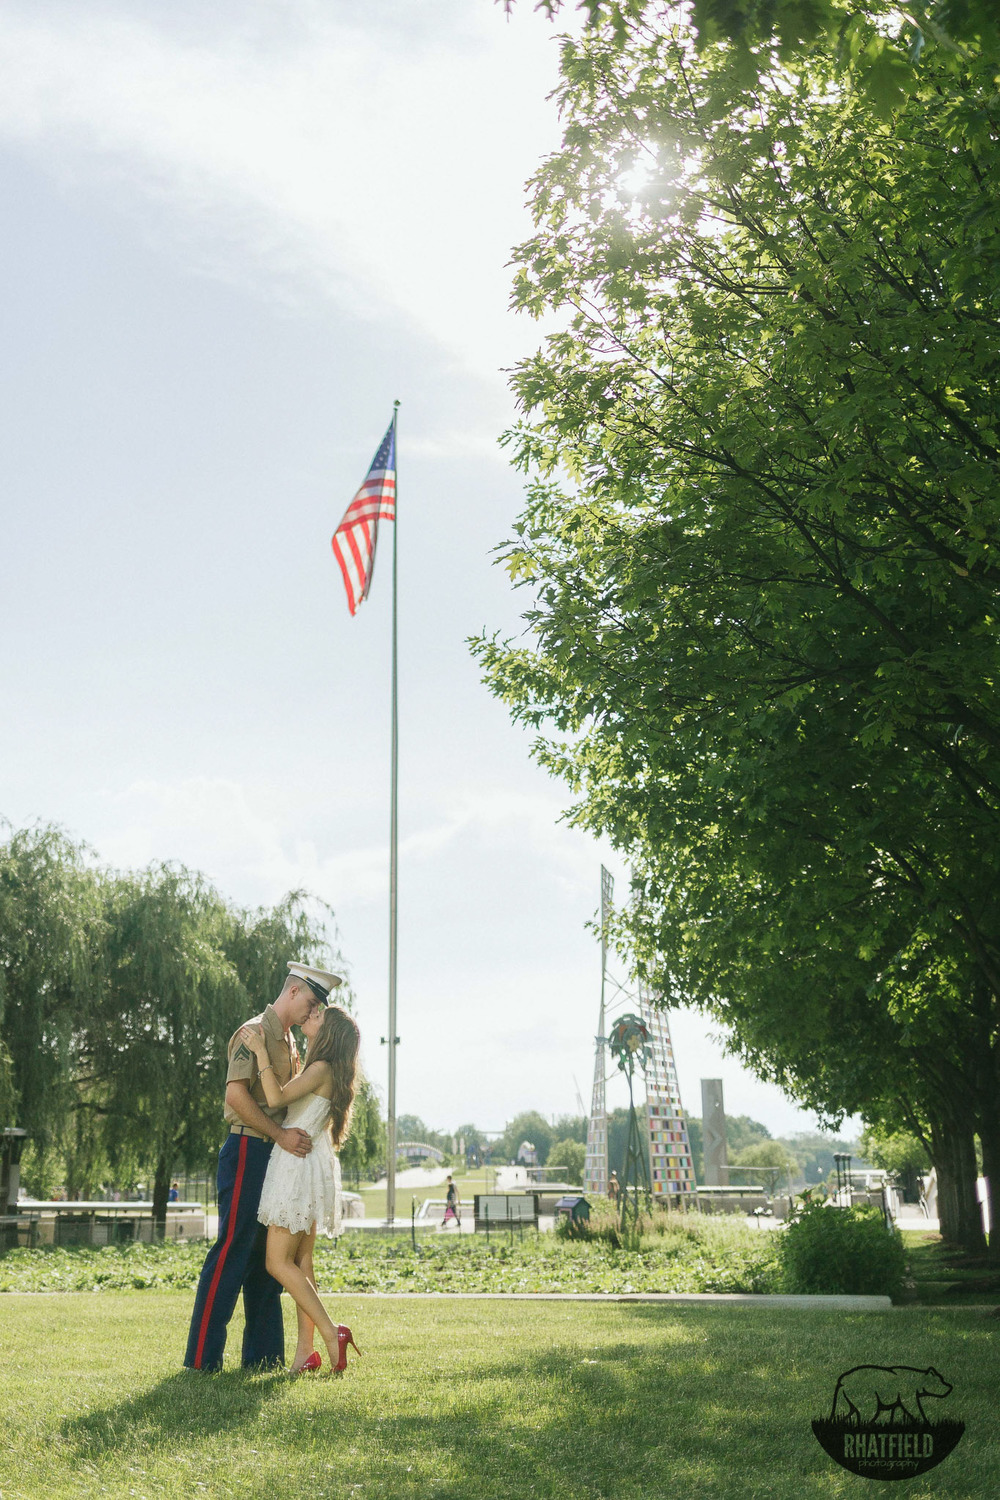 Marine-kissing-fiance-under-american-flag-park